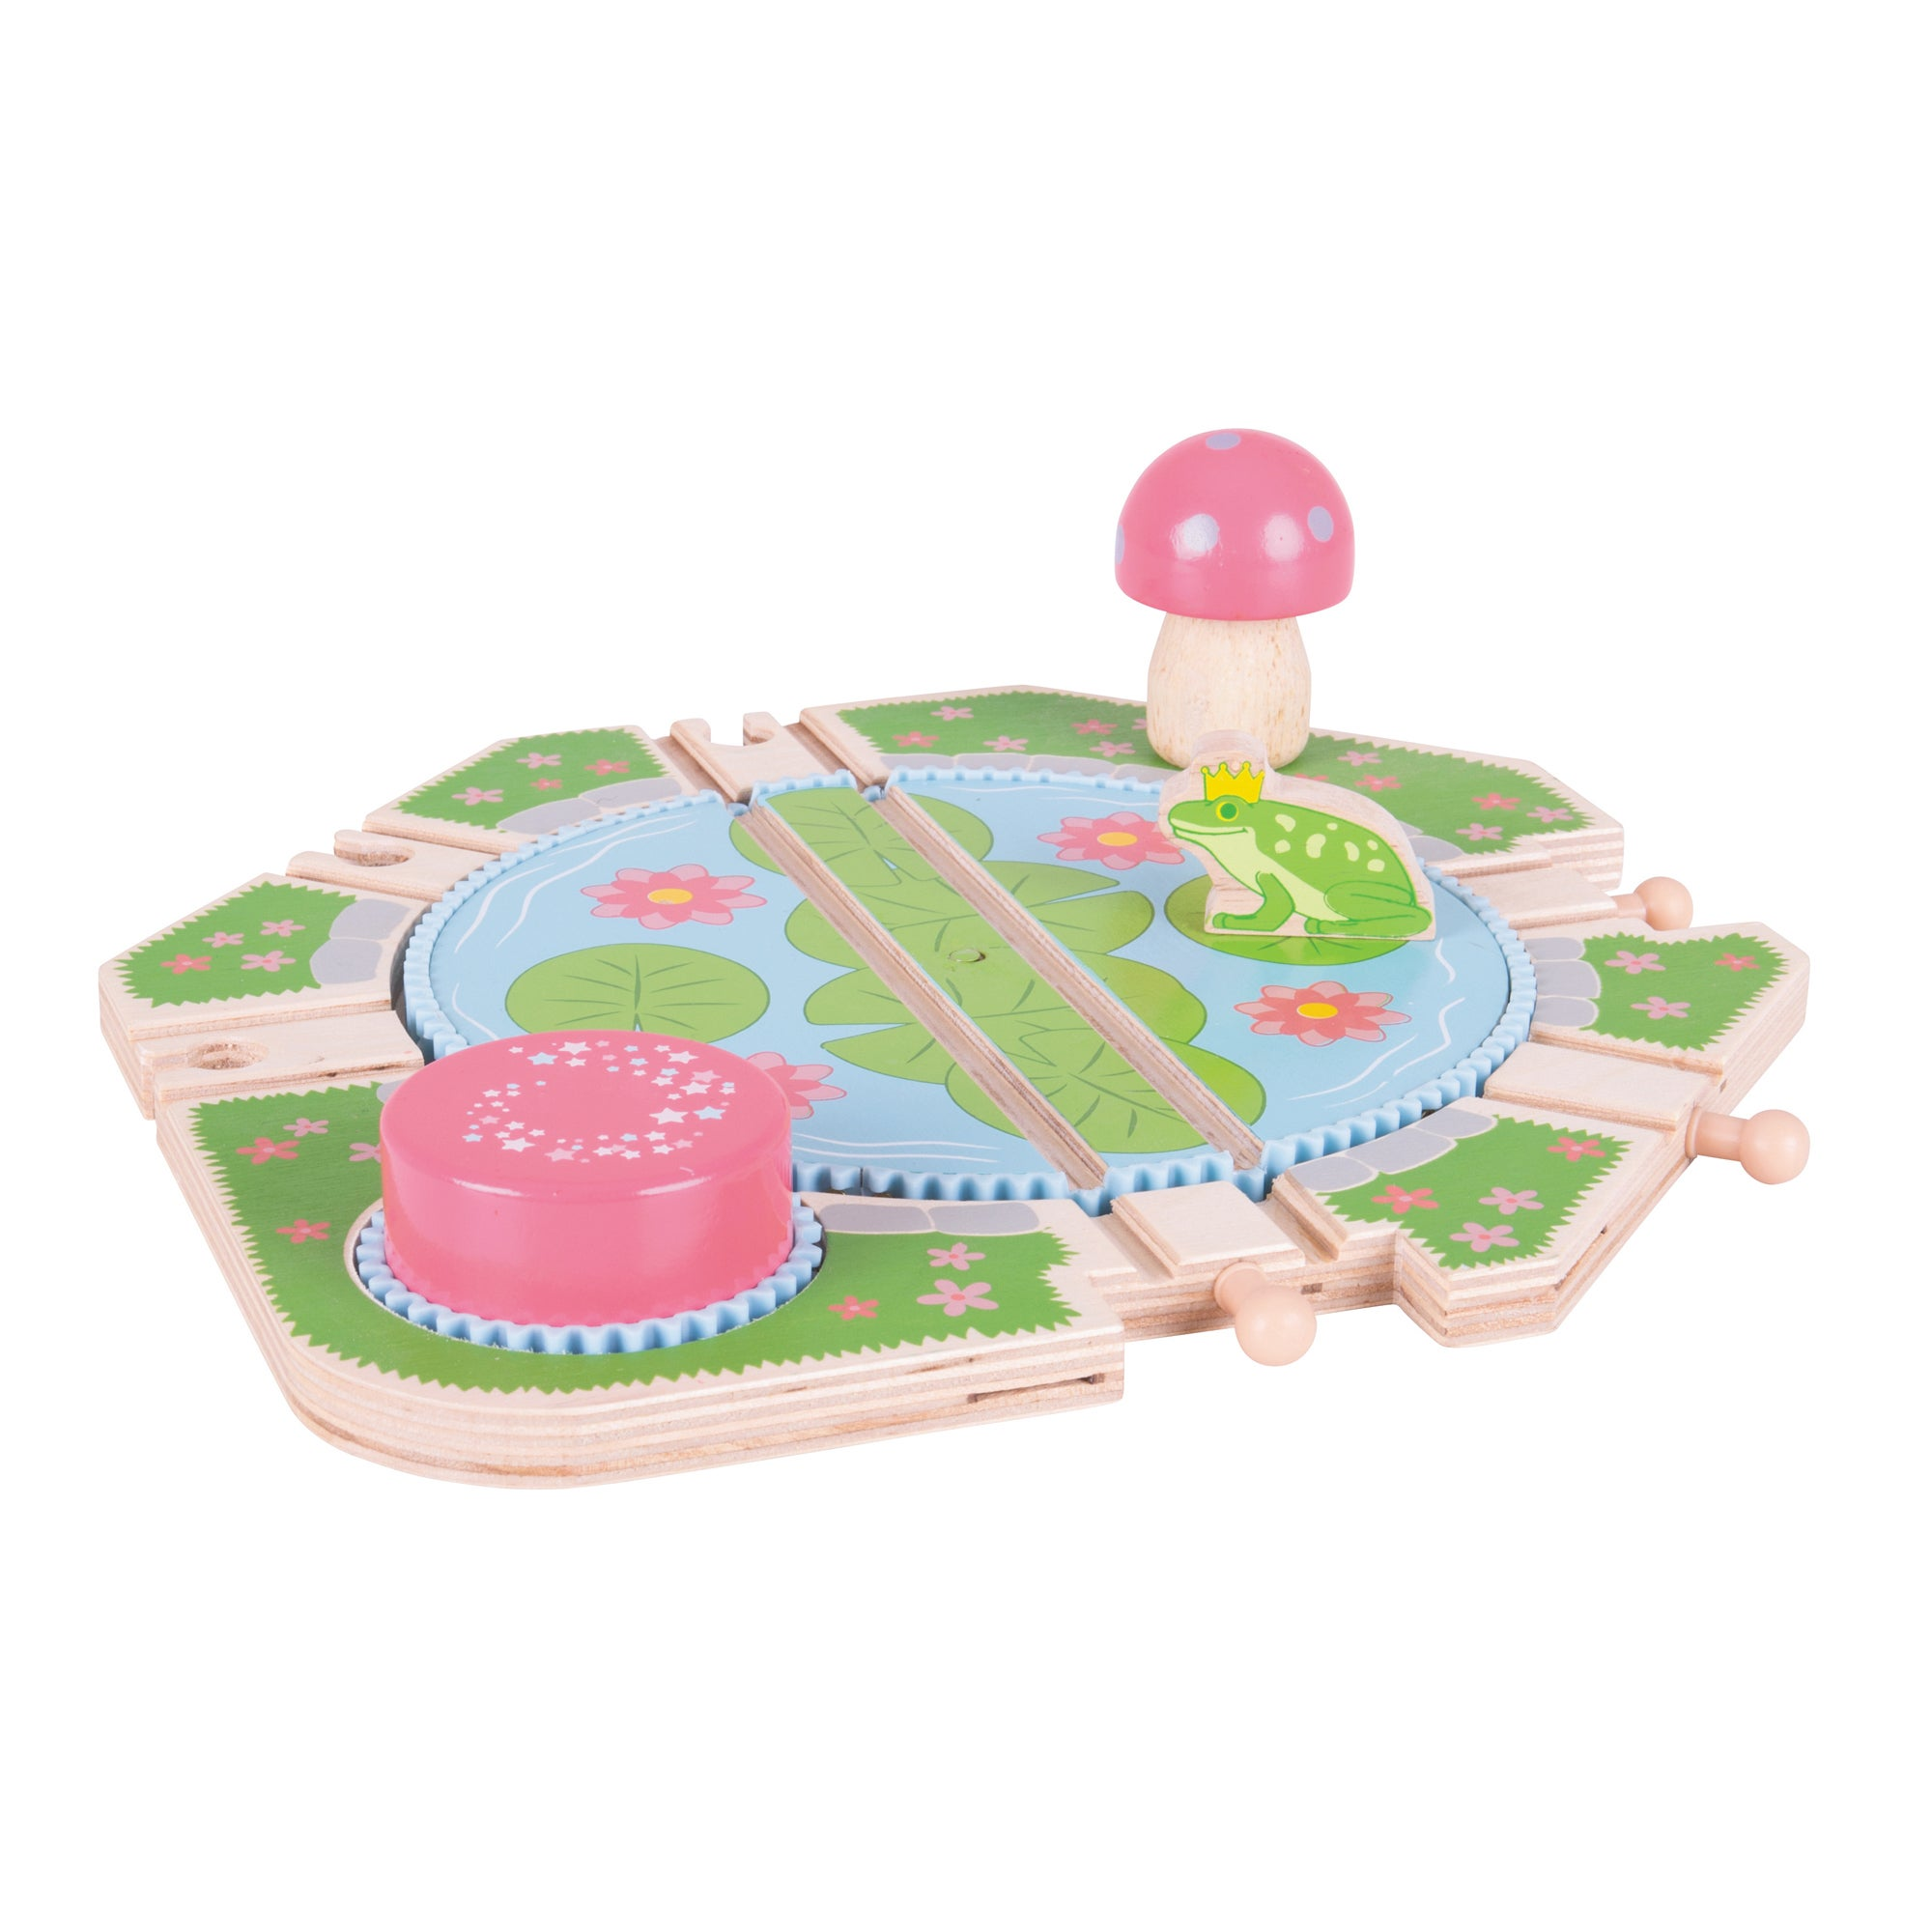 Bigjigs Toys Lilypad Turntable Wooden Train Accessory (1)